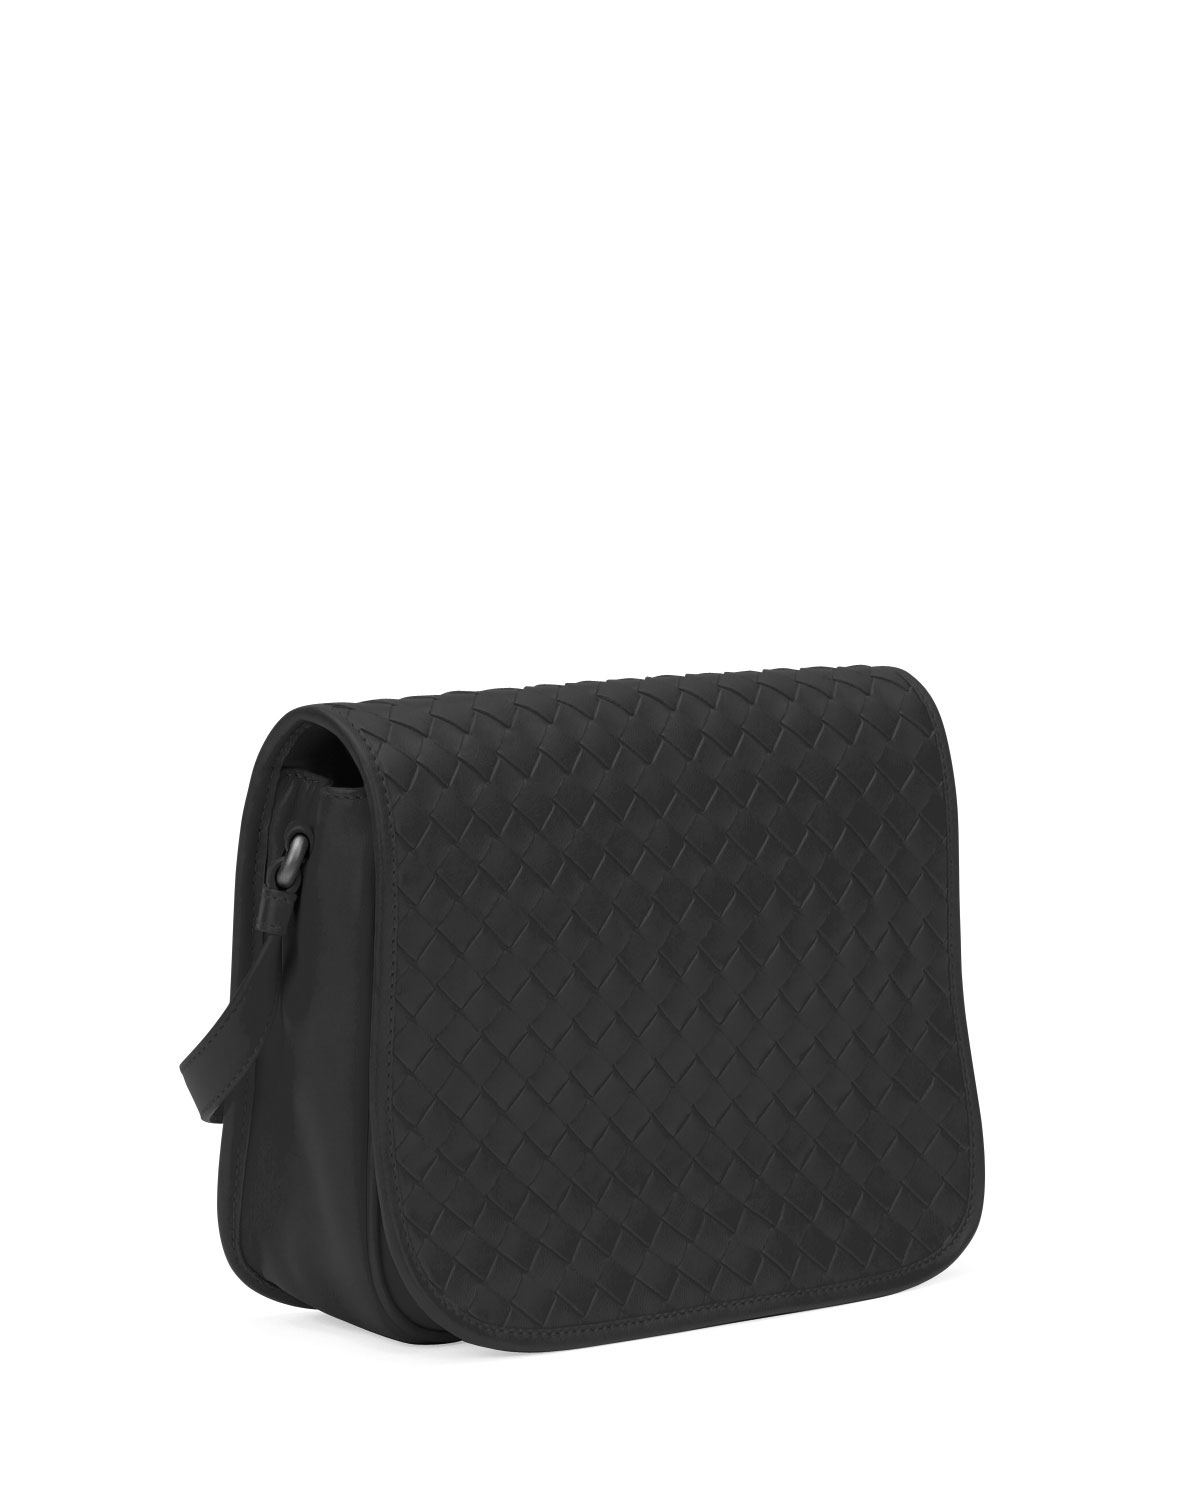 Lyst - Bottega Veneta Small Woven Flap Crossbody Bag in Black e1521f3970522